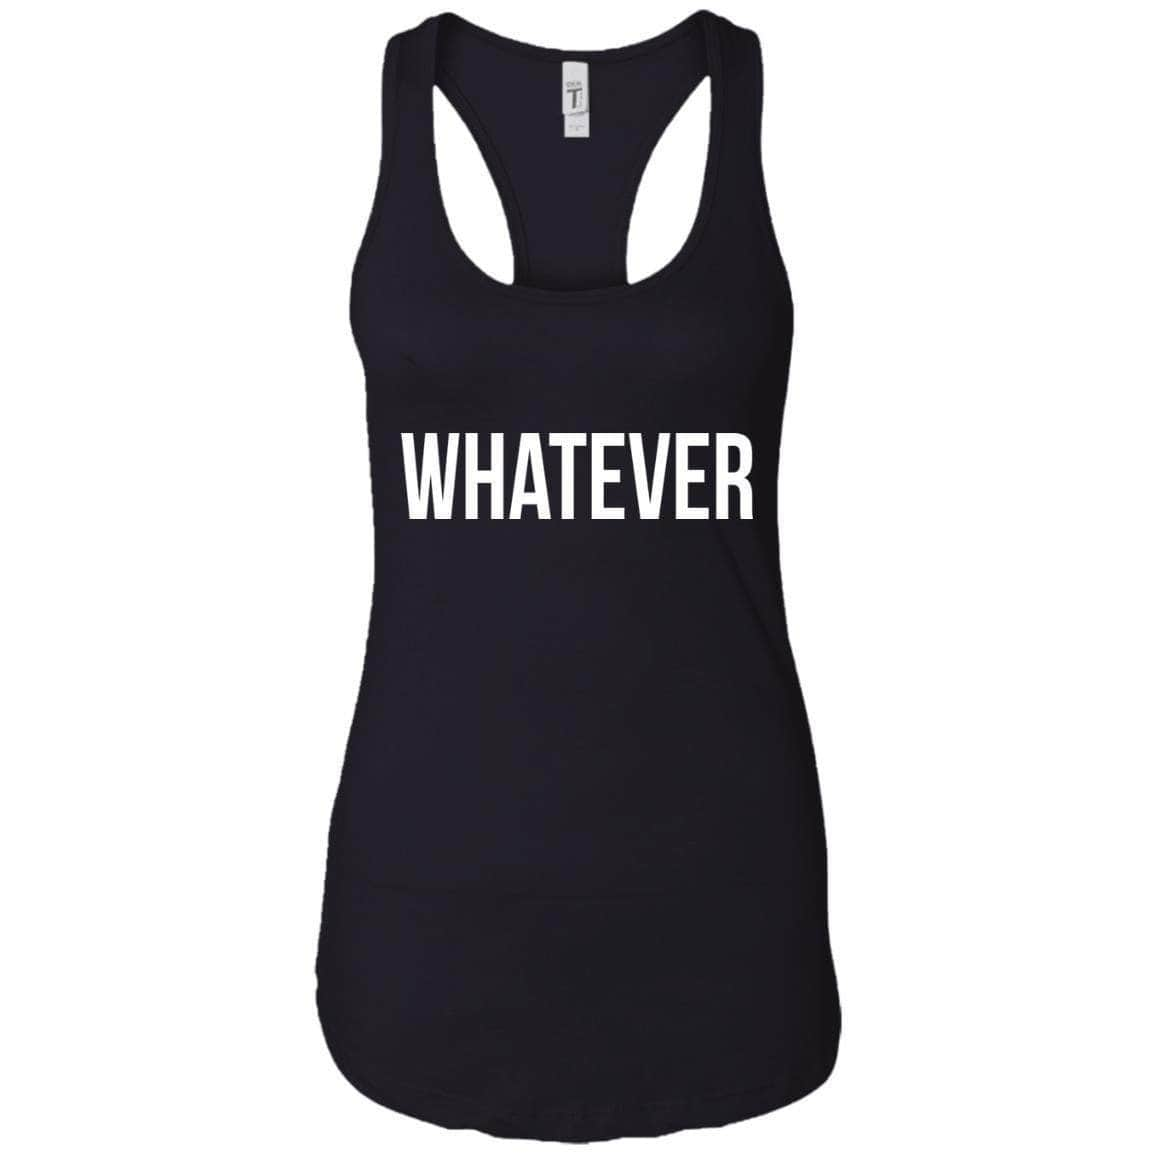 Whatever Women's Racerback Tank